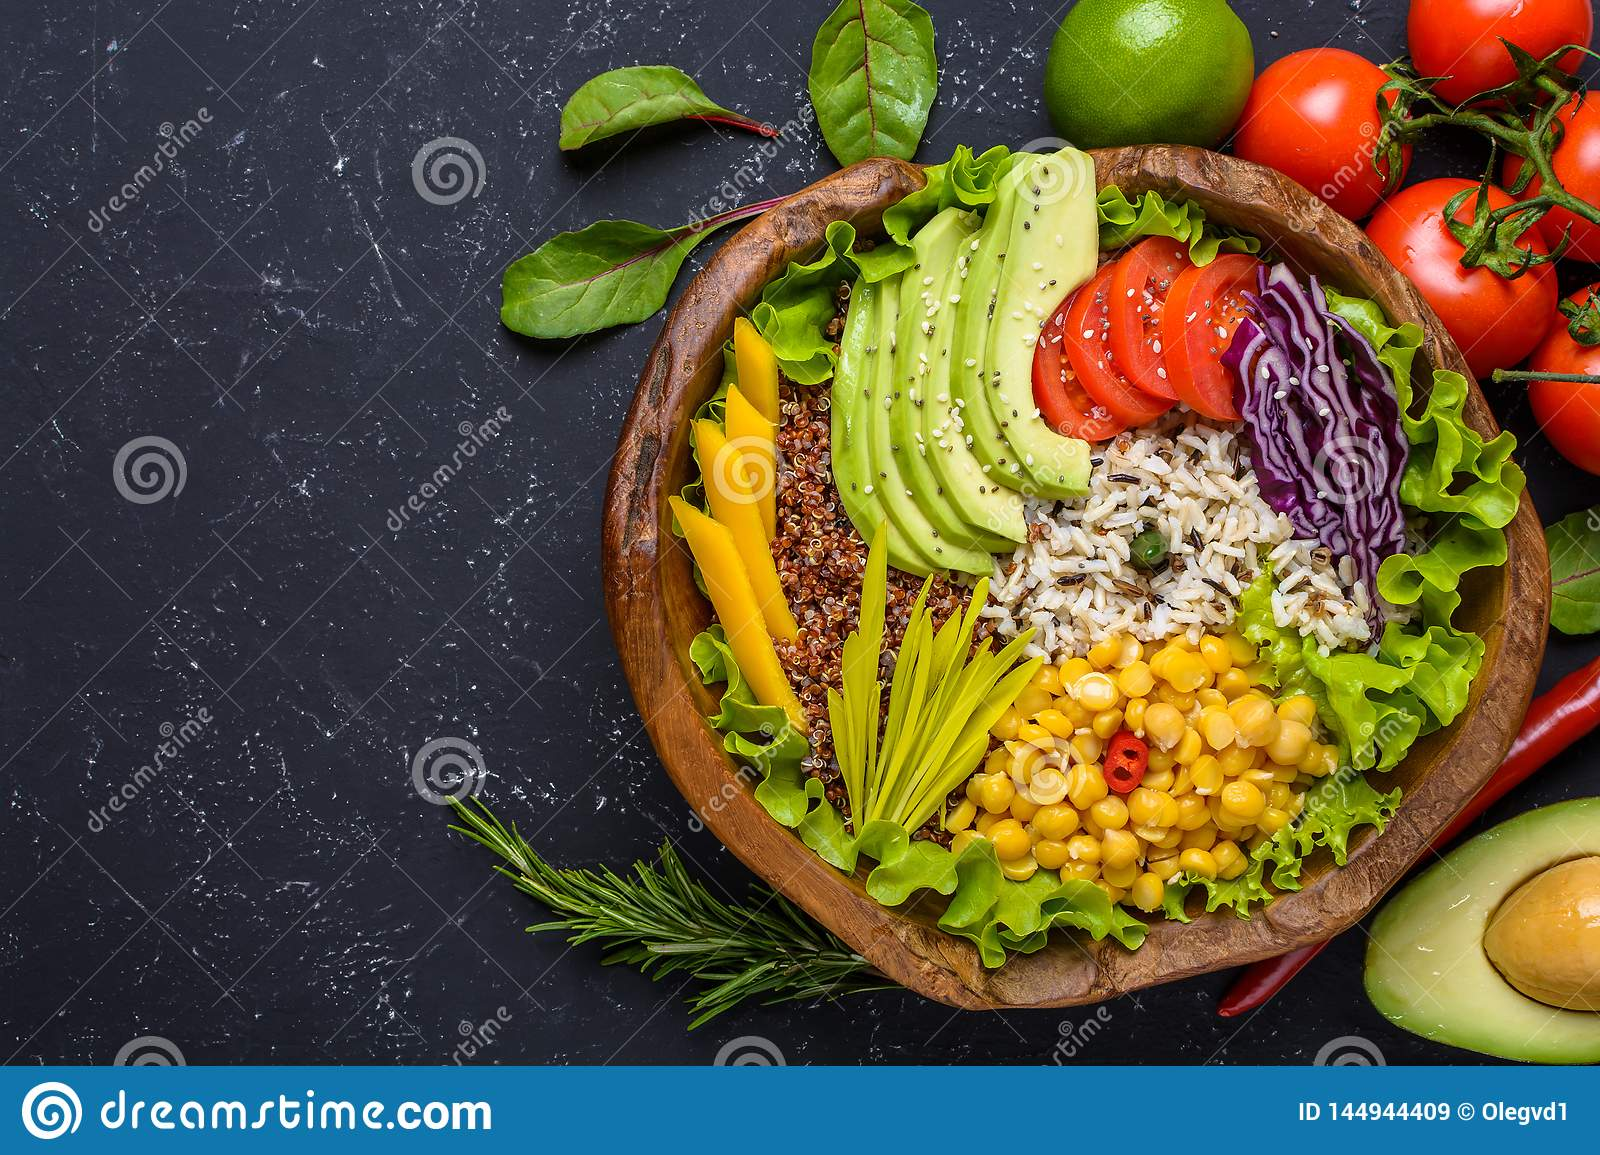 Healthy vegan food bowl with quinoa, wild rice, chickpea, tomatoes, avocado, greens, cabbage, lettuce on black stone background